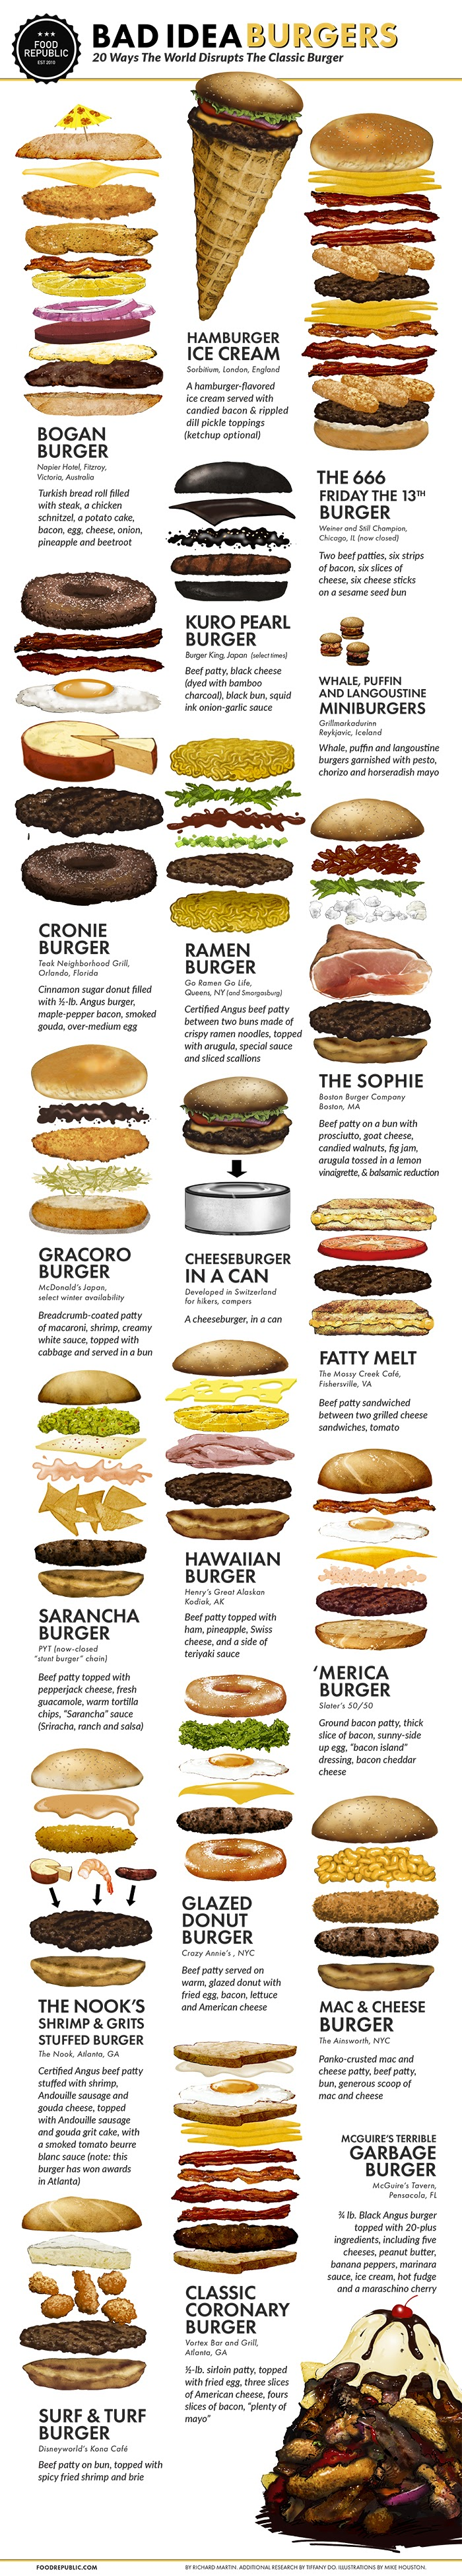 Bad Idea Burgers: 20 Ways The World Disrupts The Classic Burger #infographic